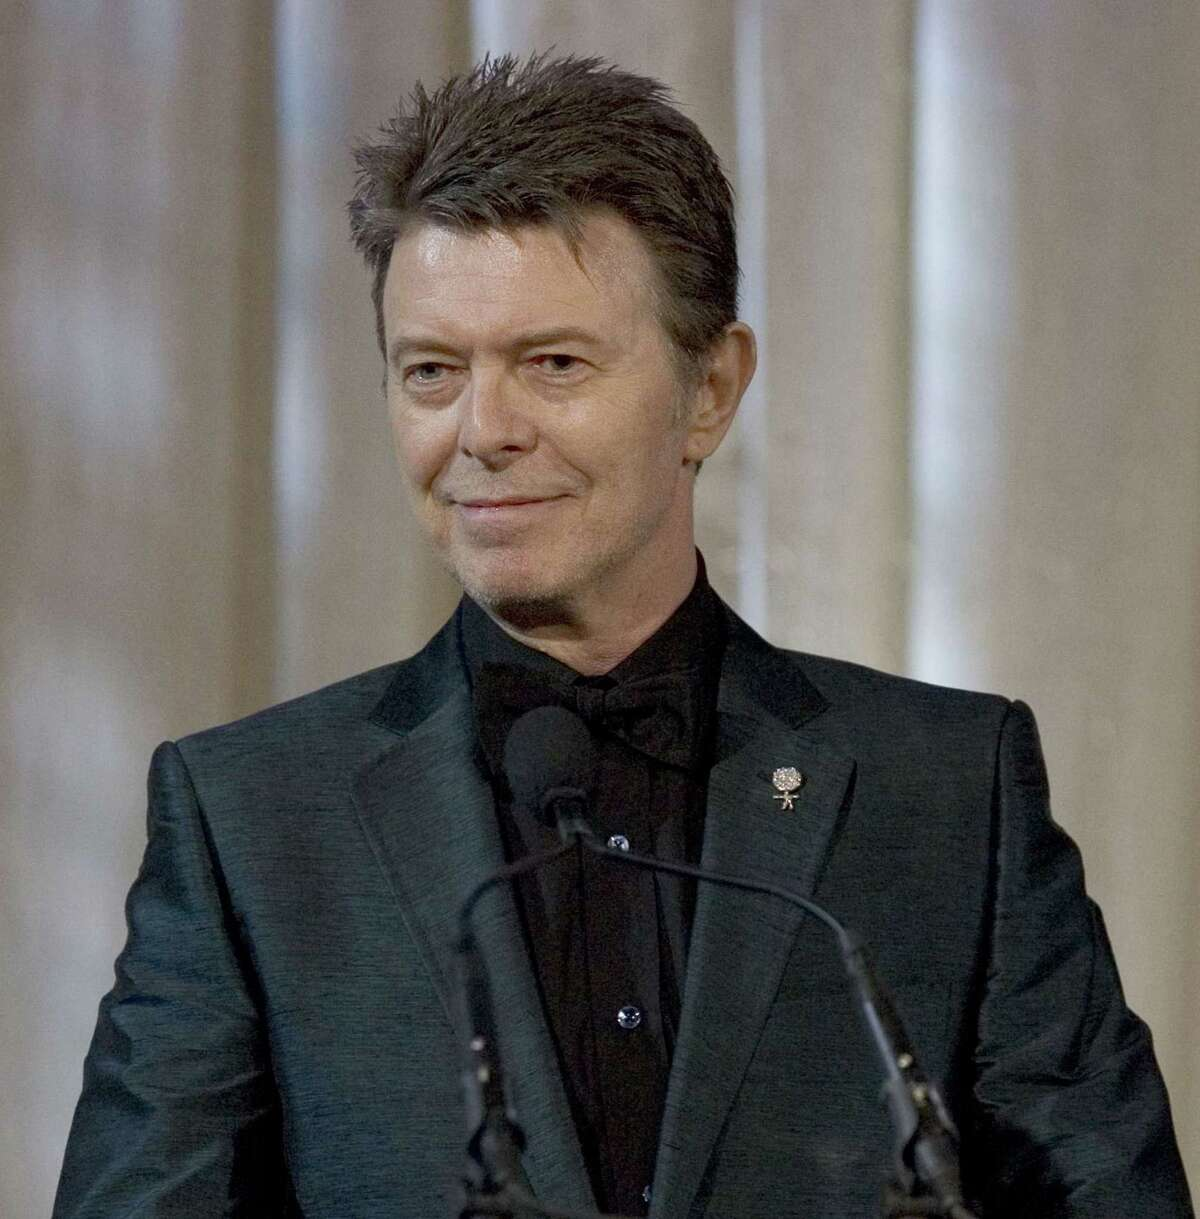 David Bowie attends an awards show in this June 5, 2007 photo taken in New York.